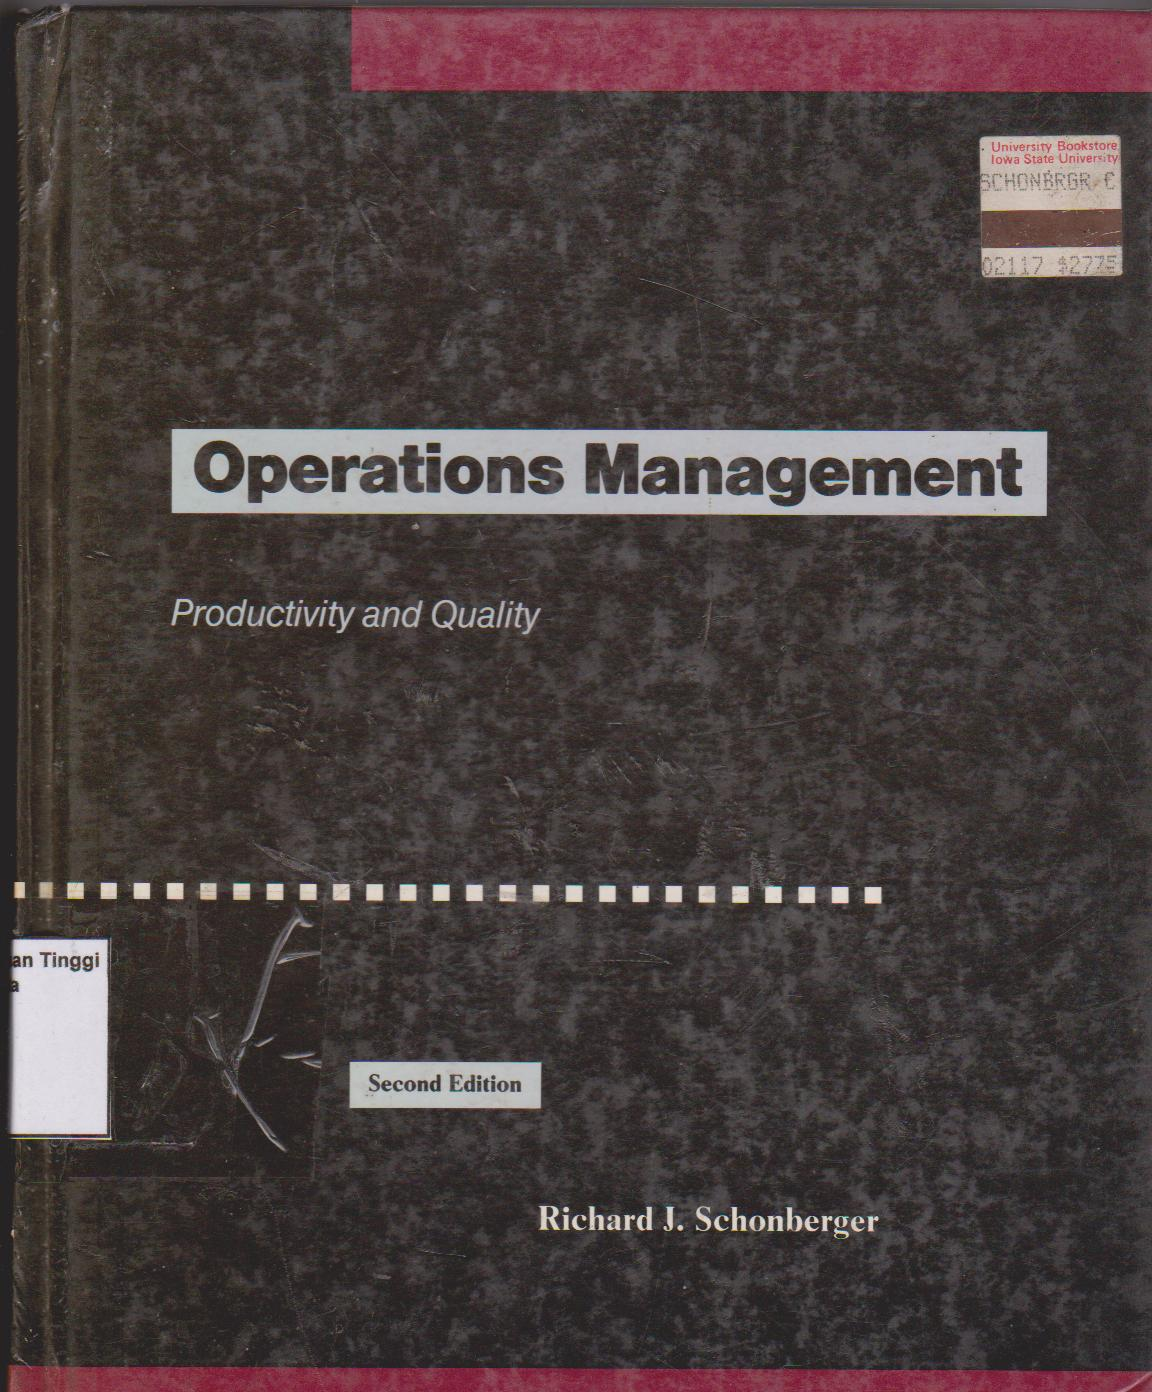 Operations management: productivity and quality second edition